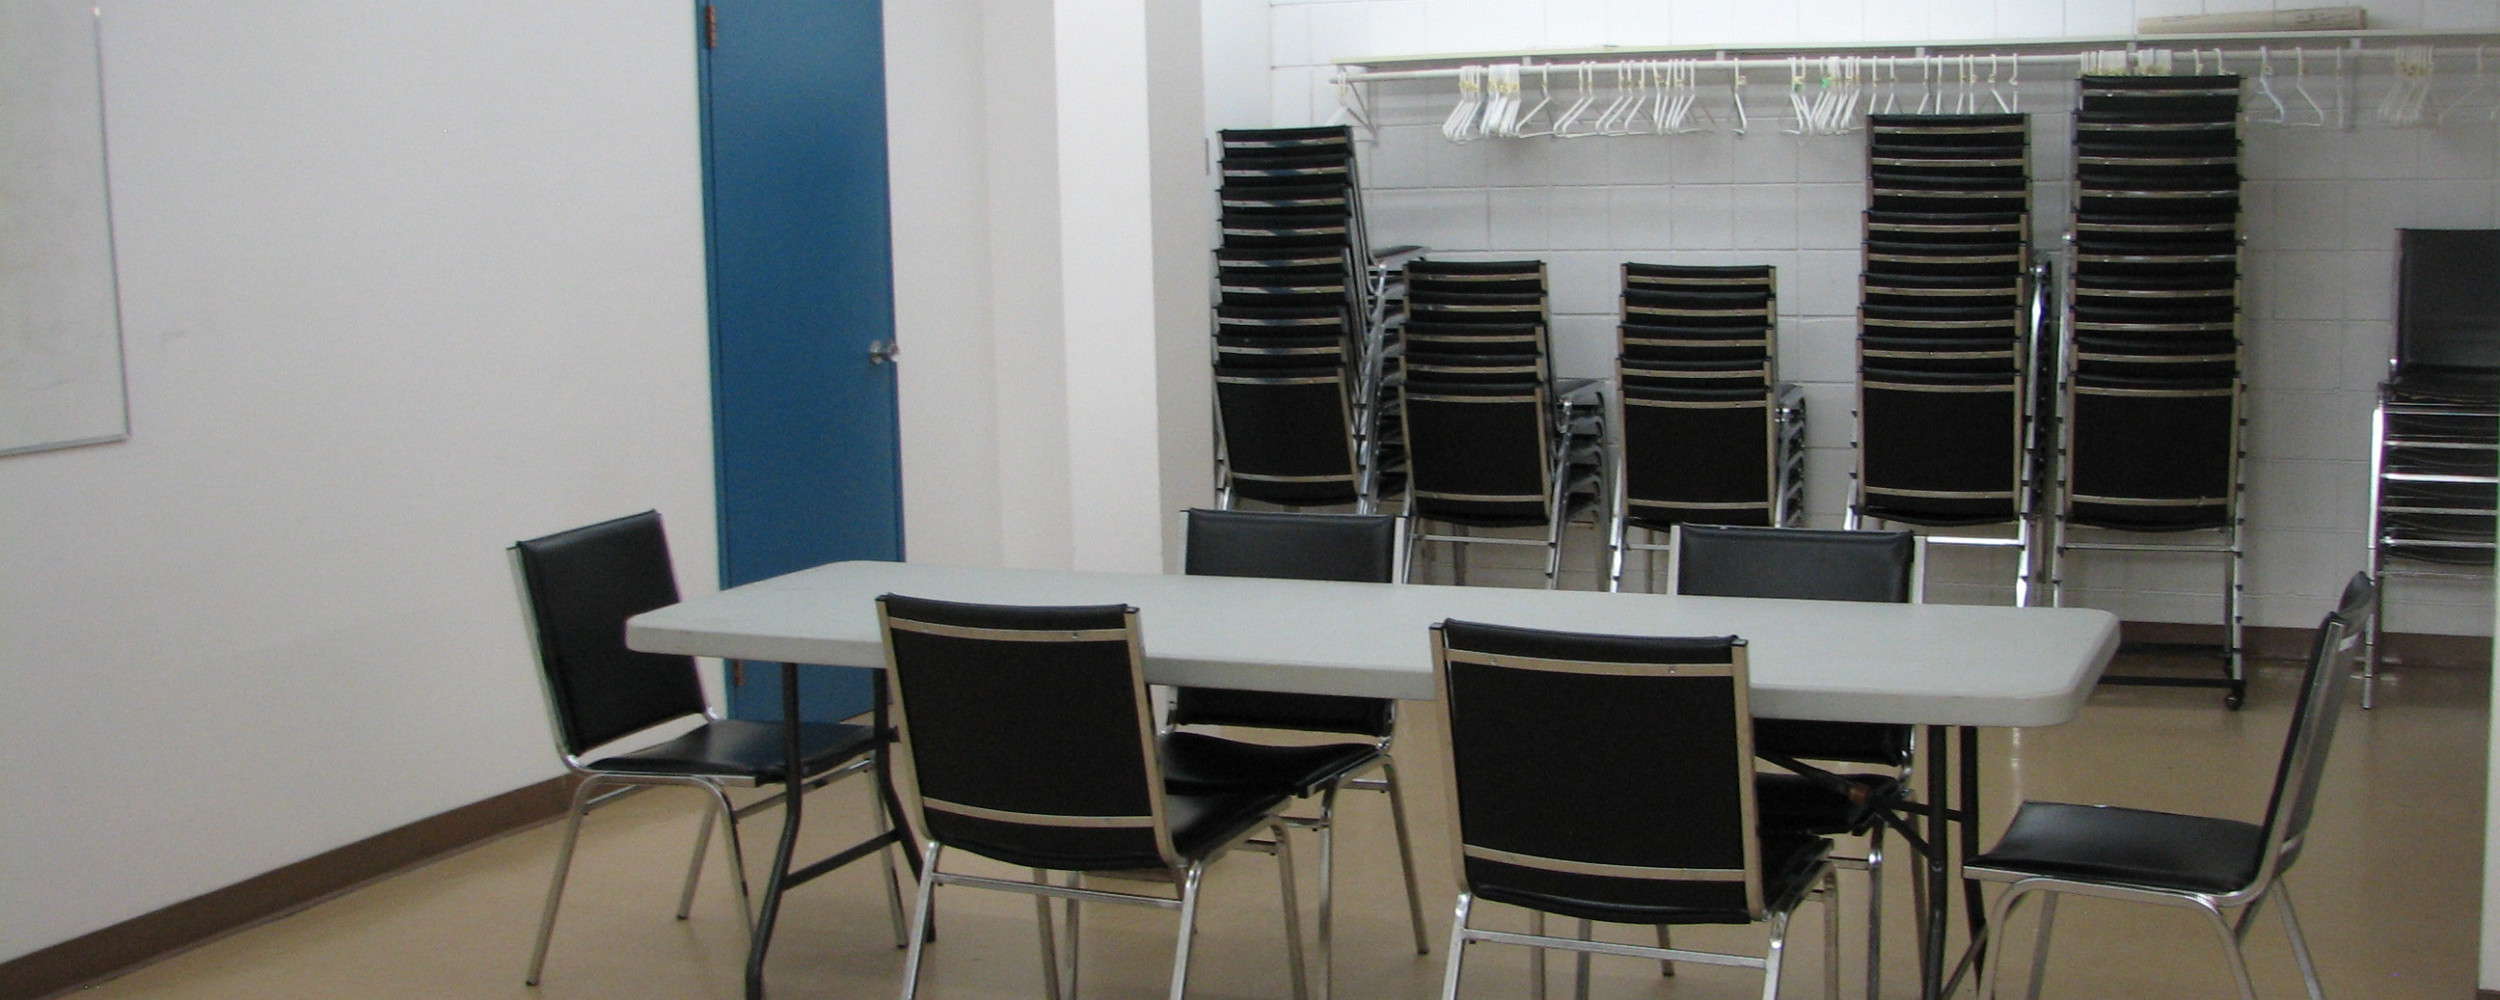 Recreation Centre - Boardroom